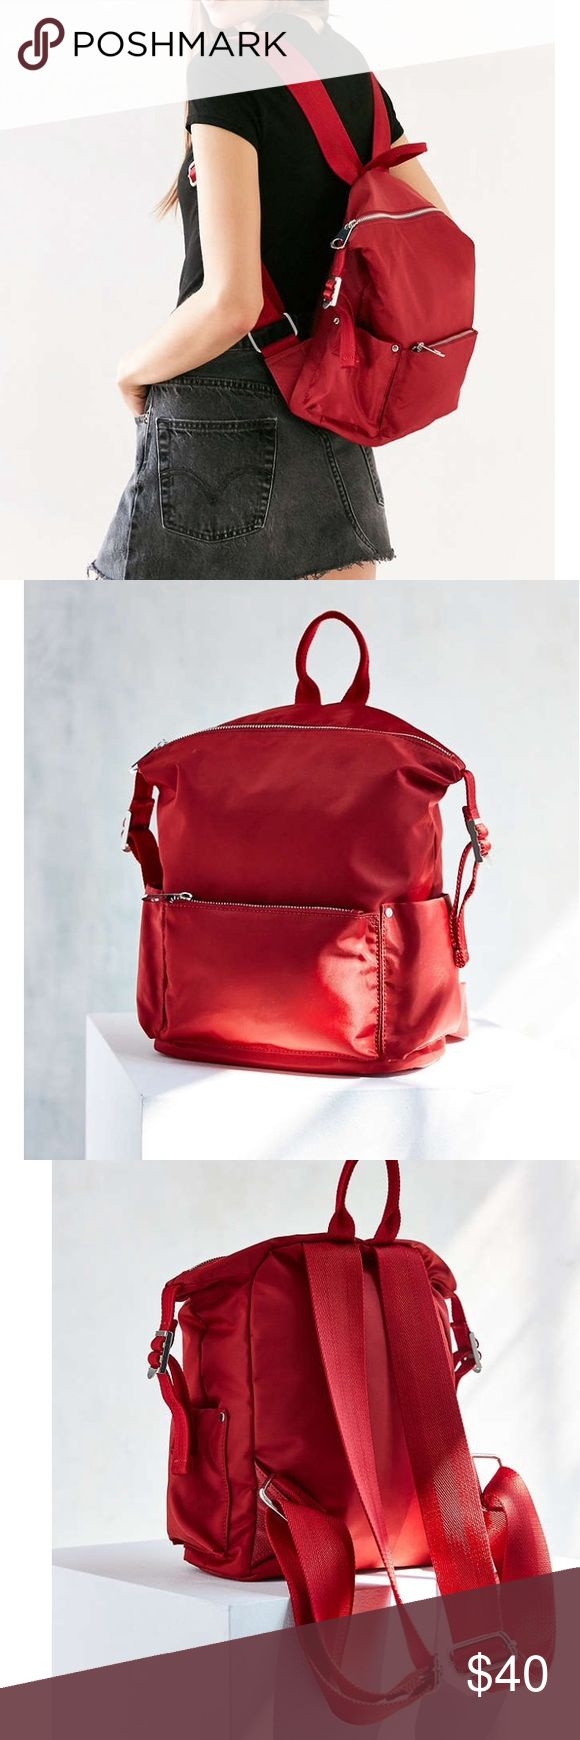 1 HR SALE Red Backpack used once, brand new condition. Very roomy and comfy ! Urban Outfitters Bags Backpacks